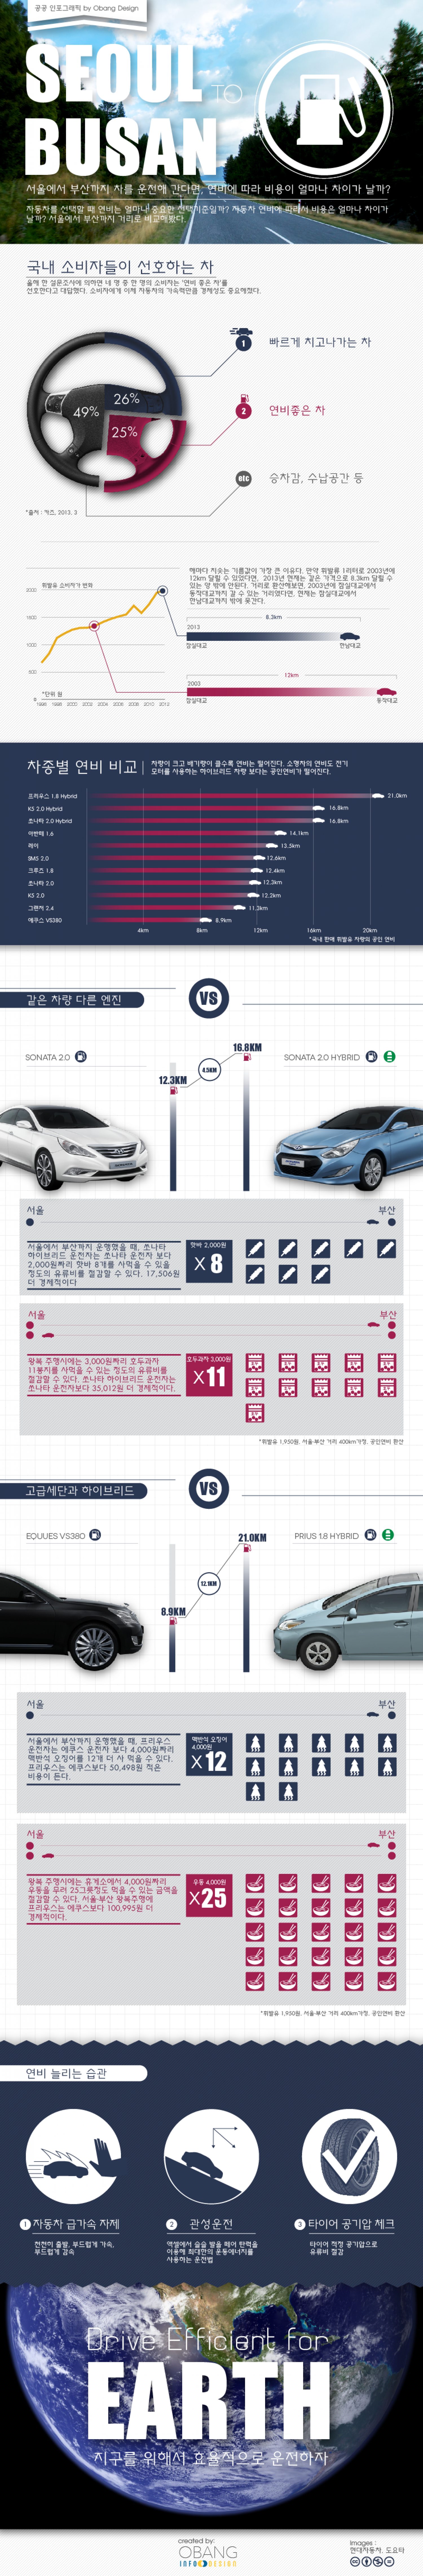 How far can you go? Infographic